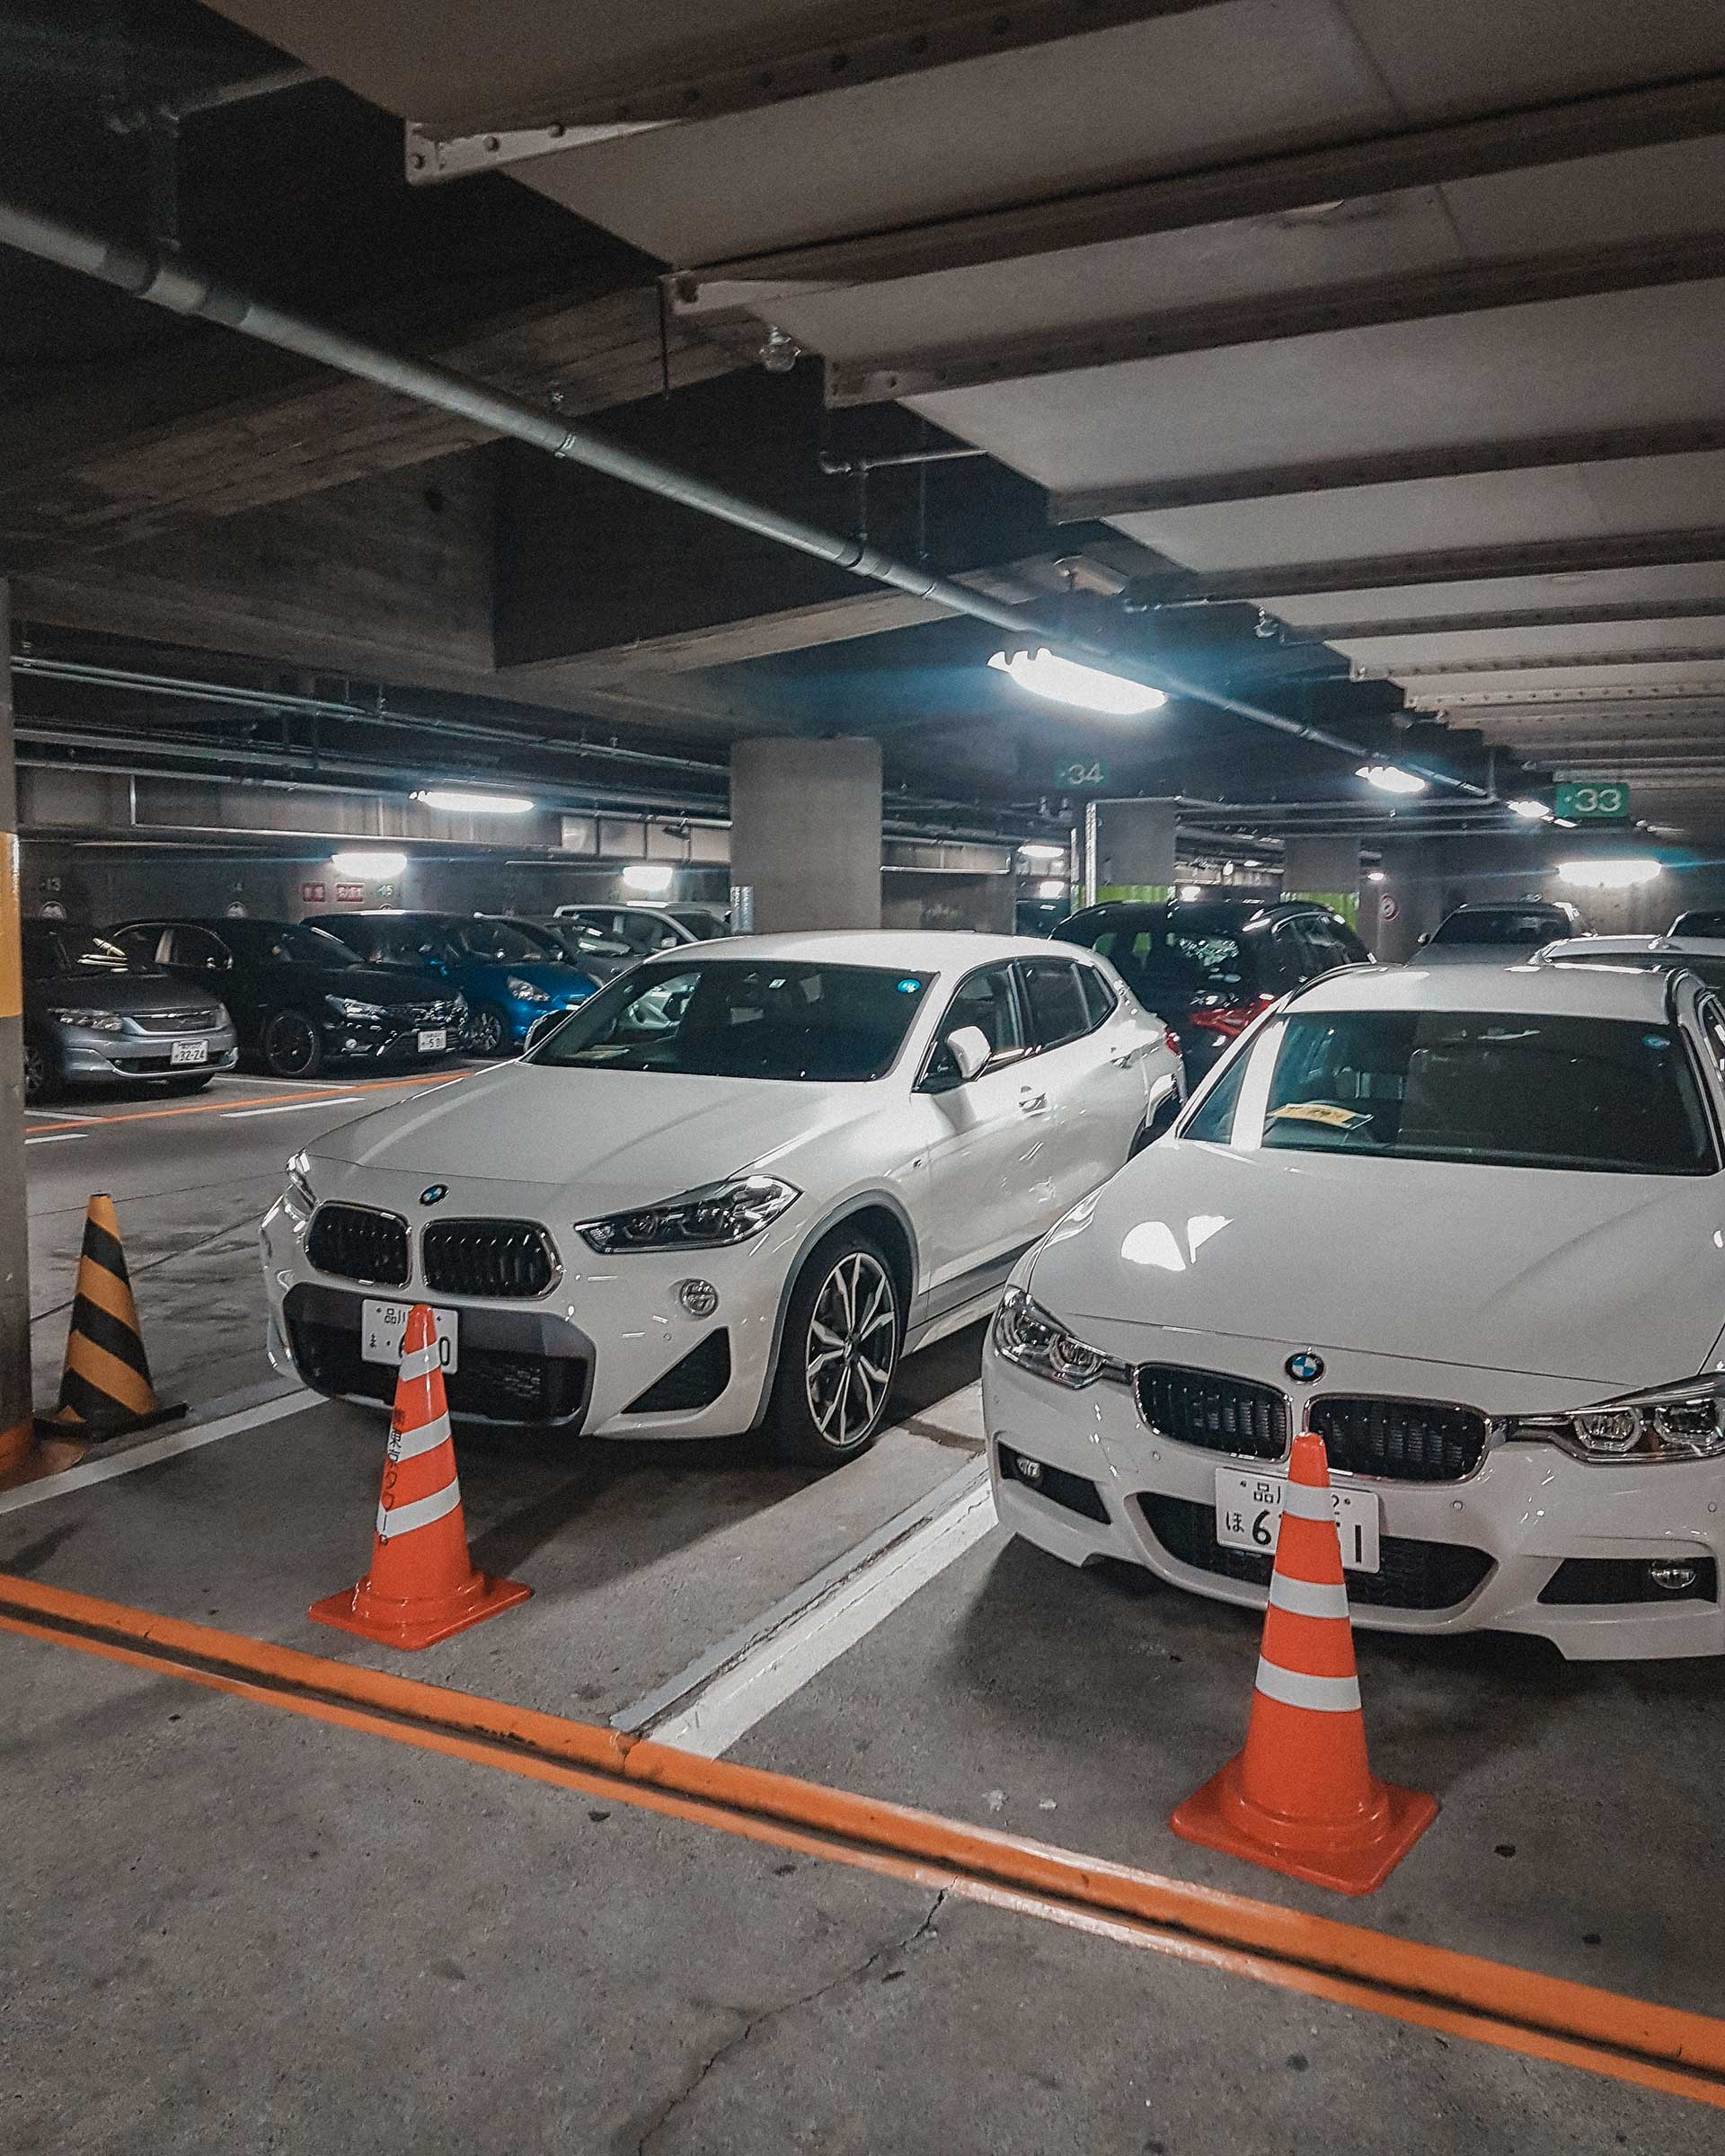 Parking lot with BMWs